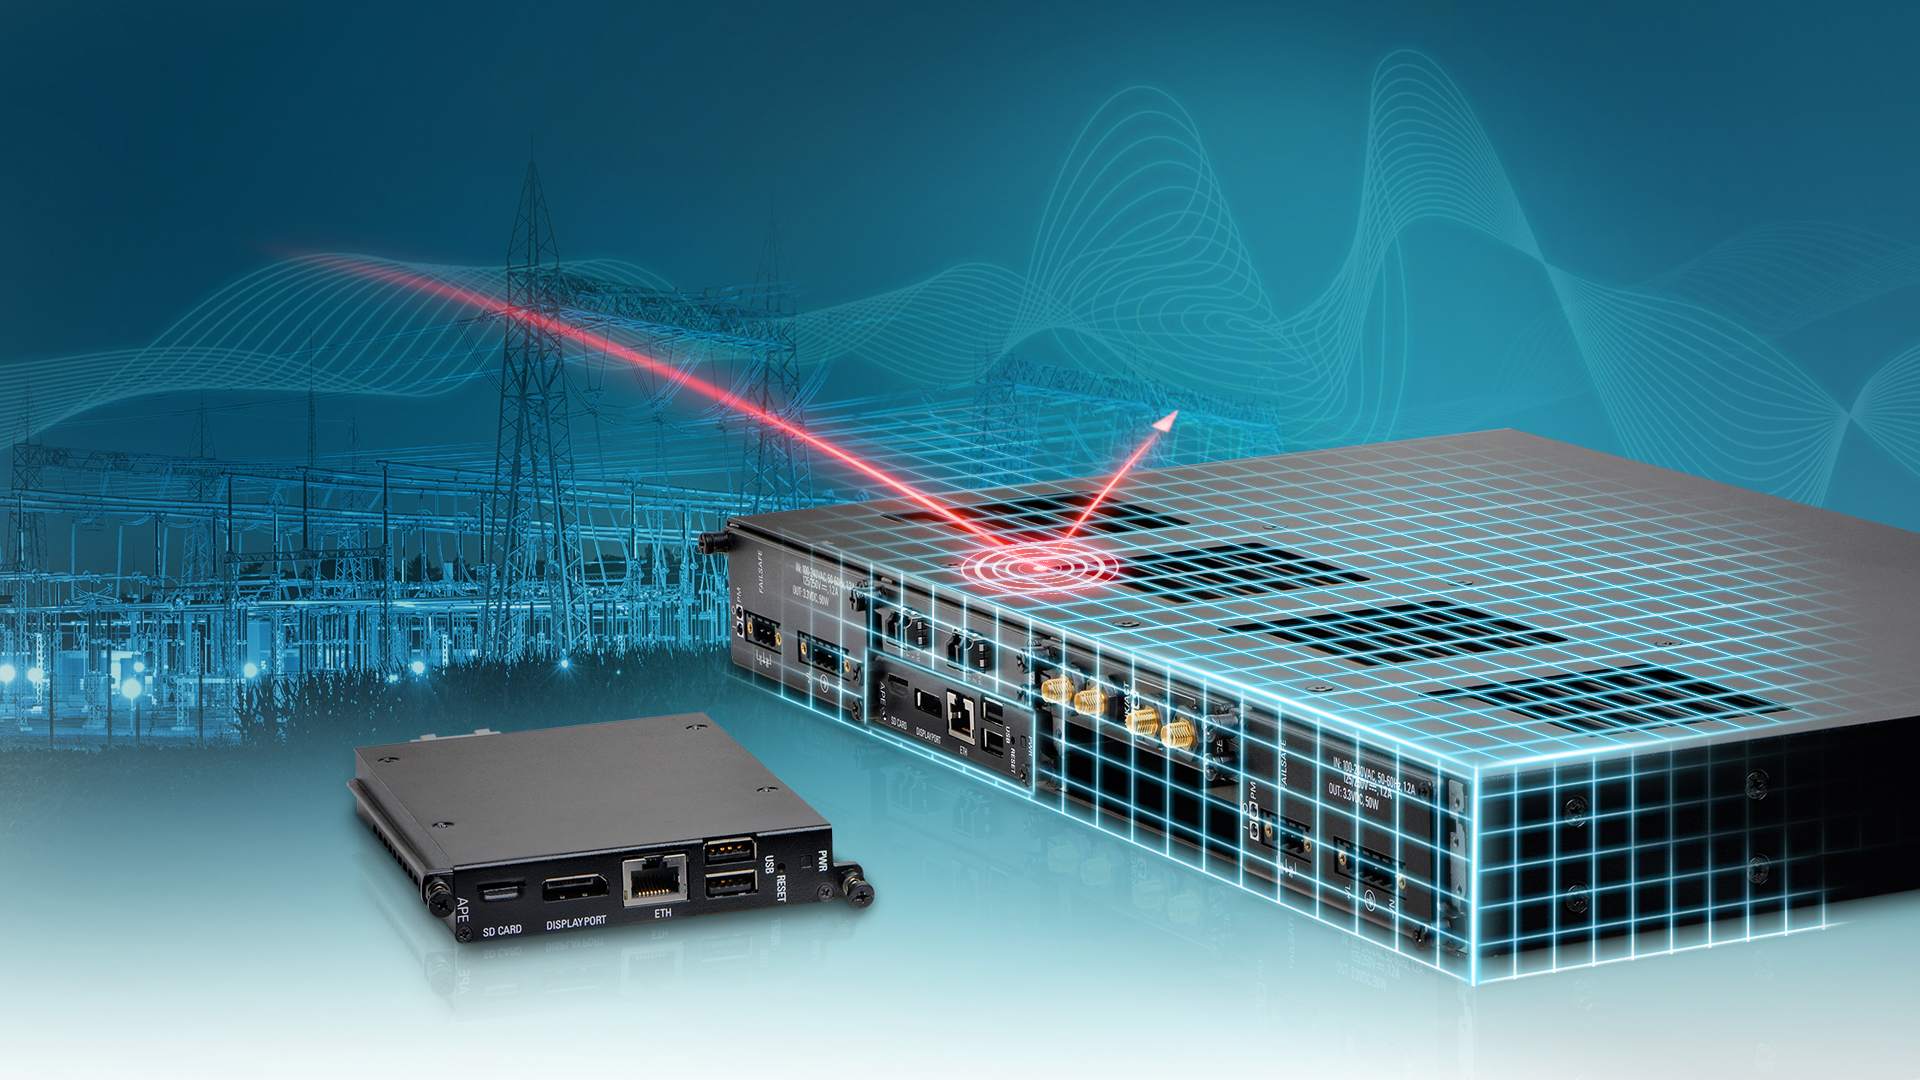 Siemens announces industrial application hosting platform for cybersecurity